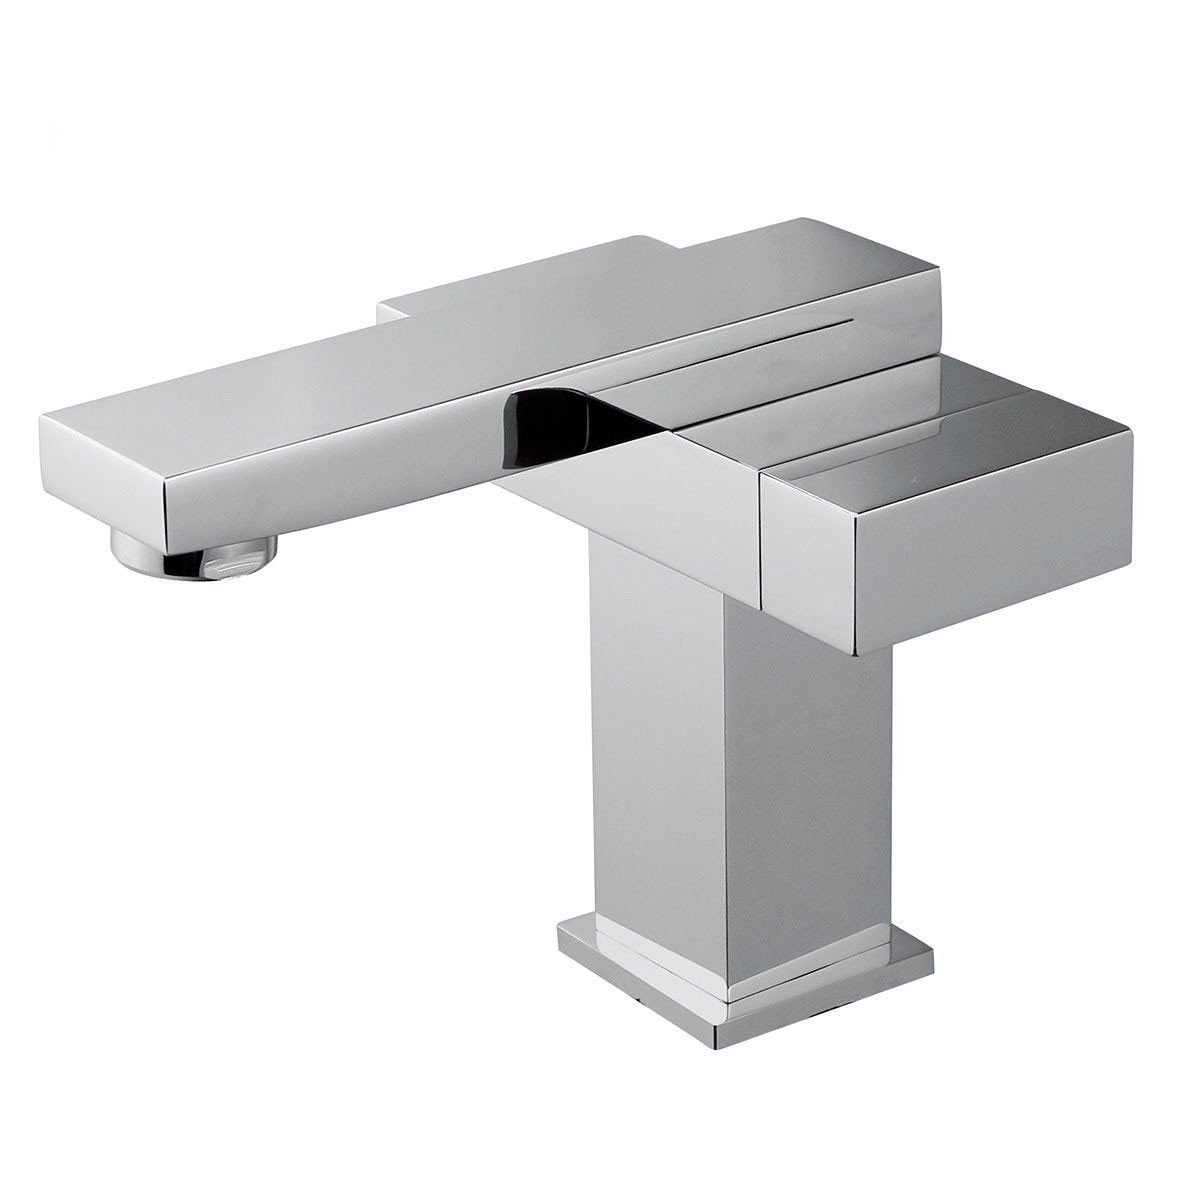 Robinet de Lavabo&Vasque - Simple Trou Double Levier - Laiton Fini Chrome (6051)